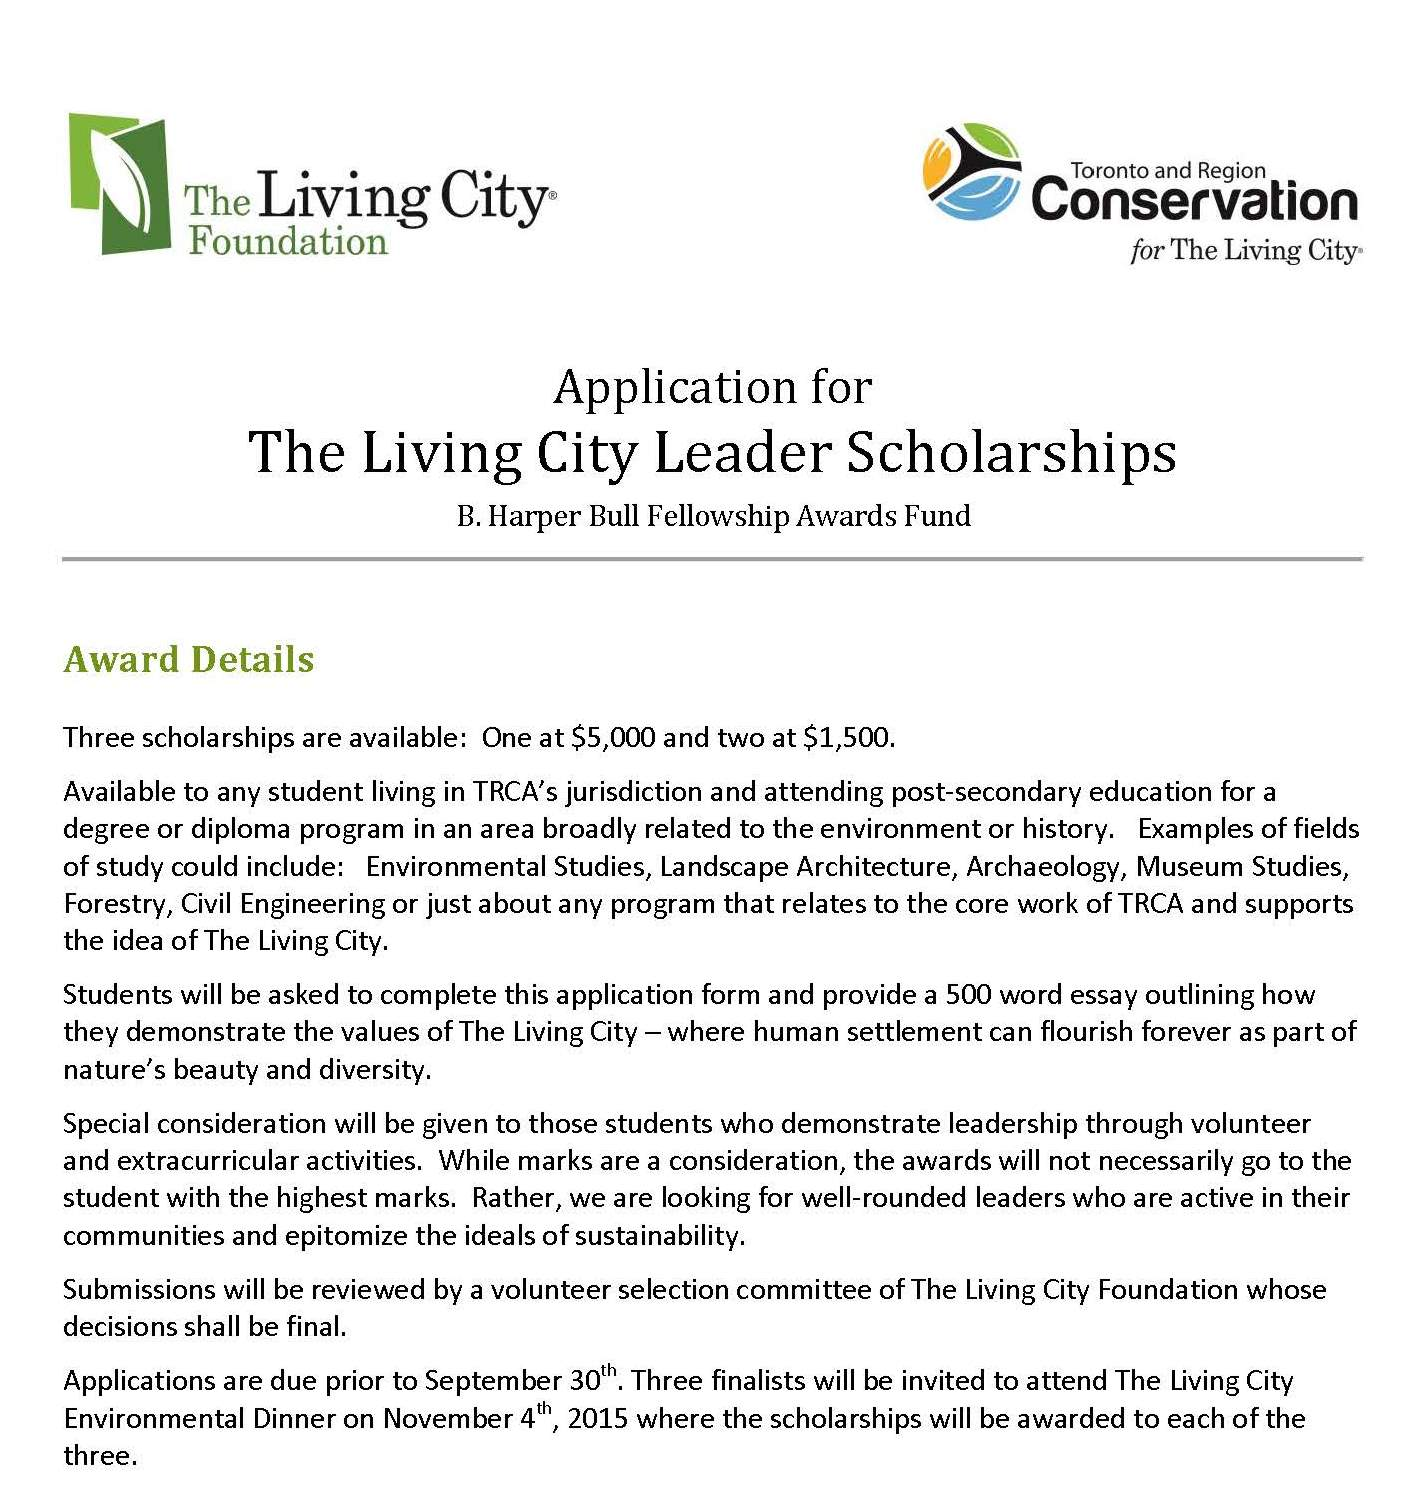 living in the city essay the strange benefits of living in a total  living city reg fdn on announcing the living city leader living cityreg fdn on announcing the